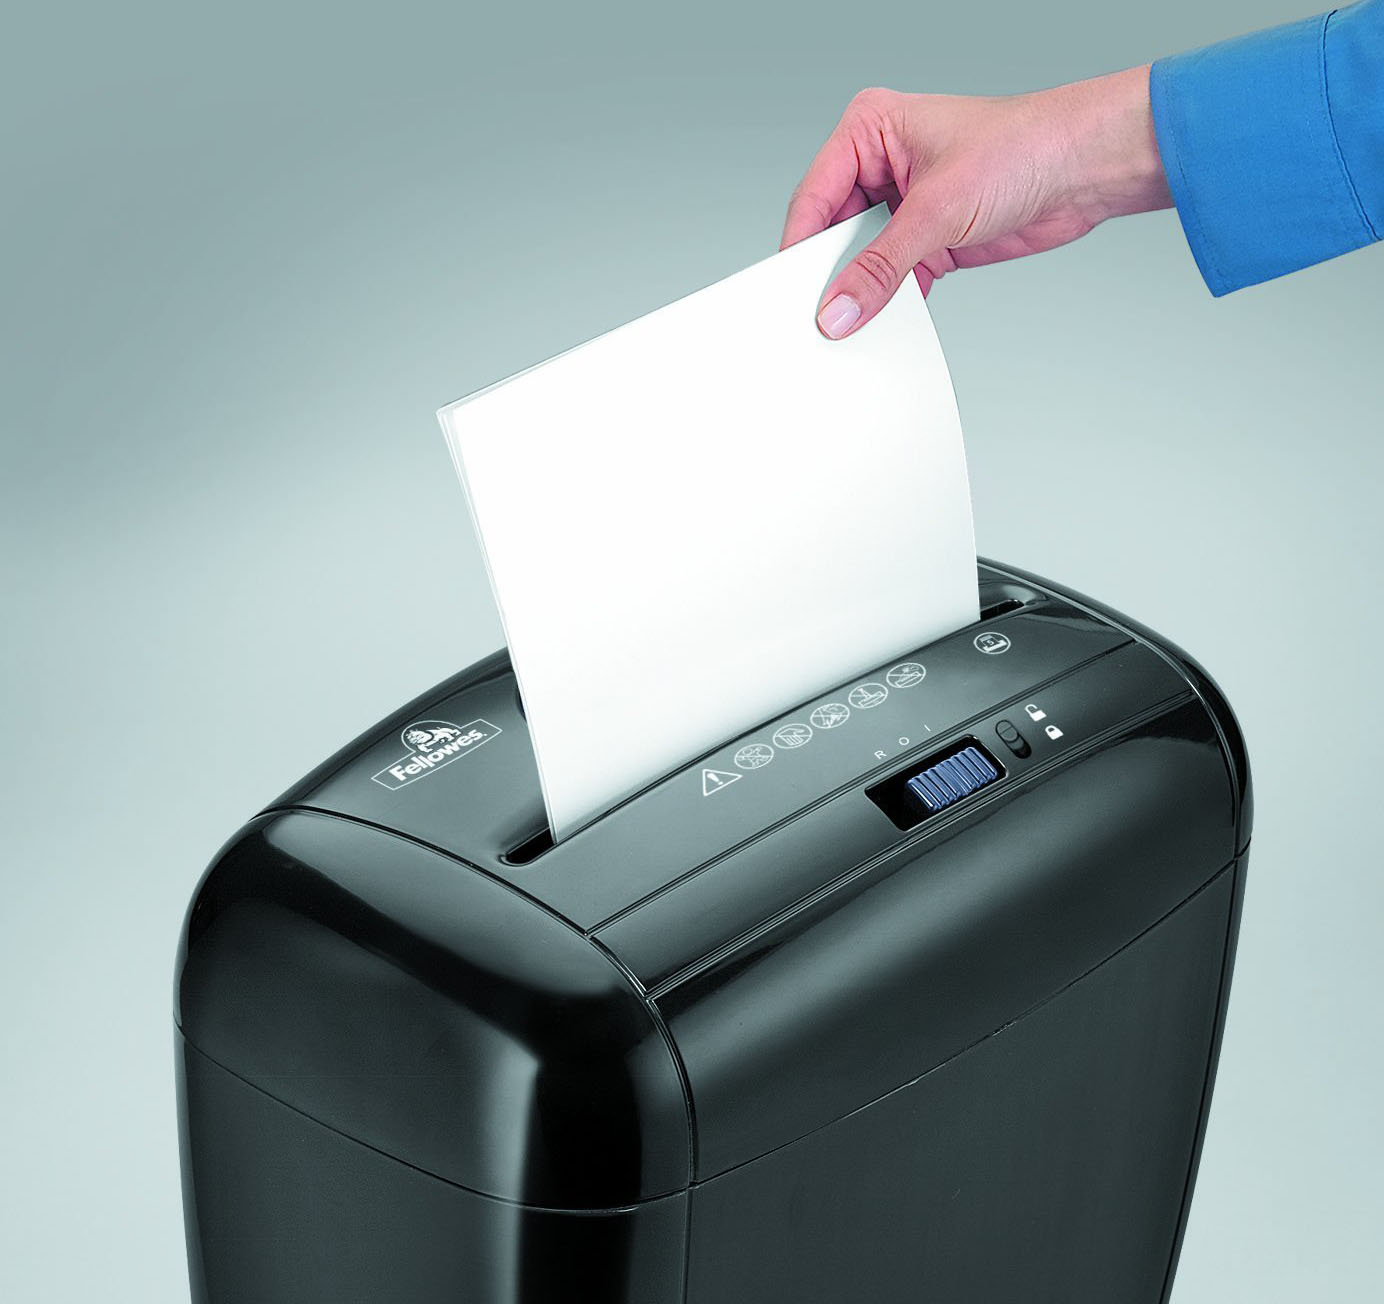 buy cheap paper shredder Destroy junk mail and sensitive documents in seconds with a high-quality, long-lasting paper shredder from best buy.